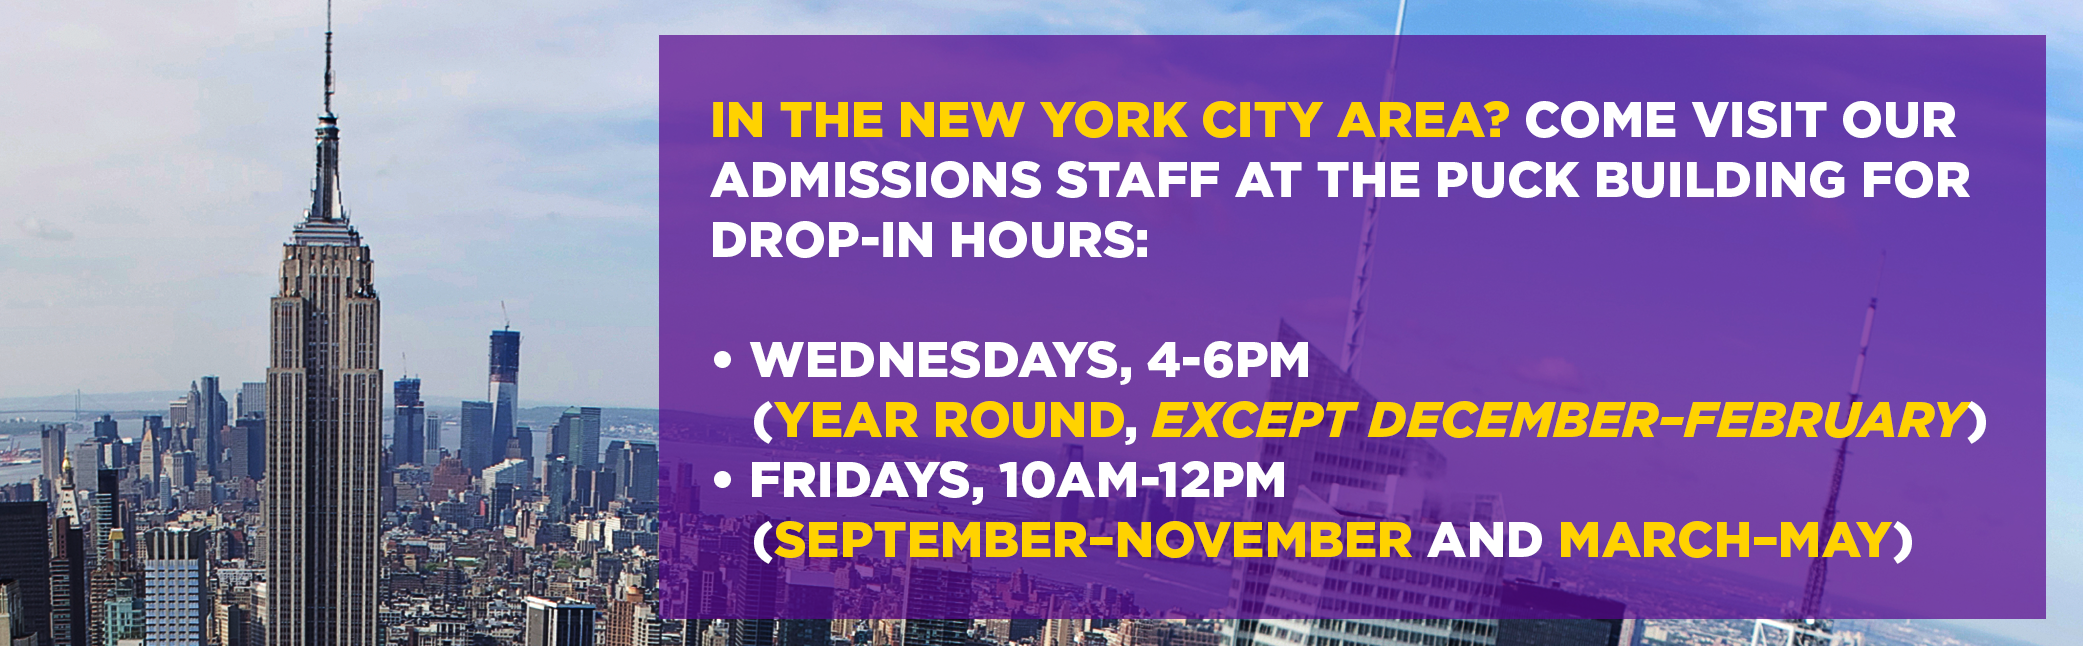 Visit us nyu wagner in the new york city area come visit our admissions staff at the puck building xflitez Choice Image